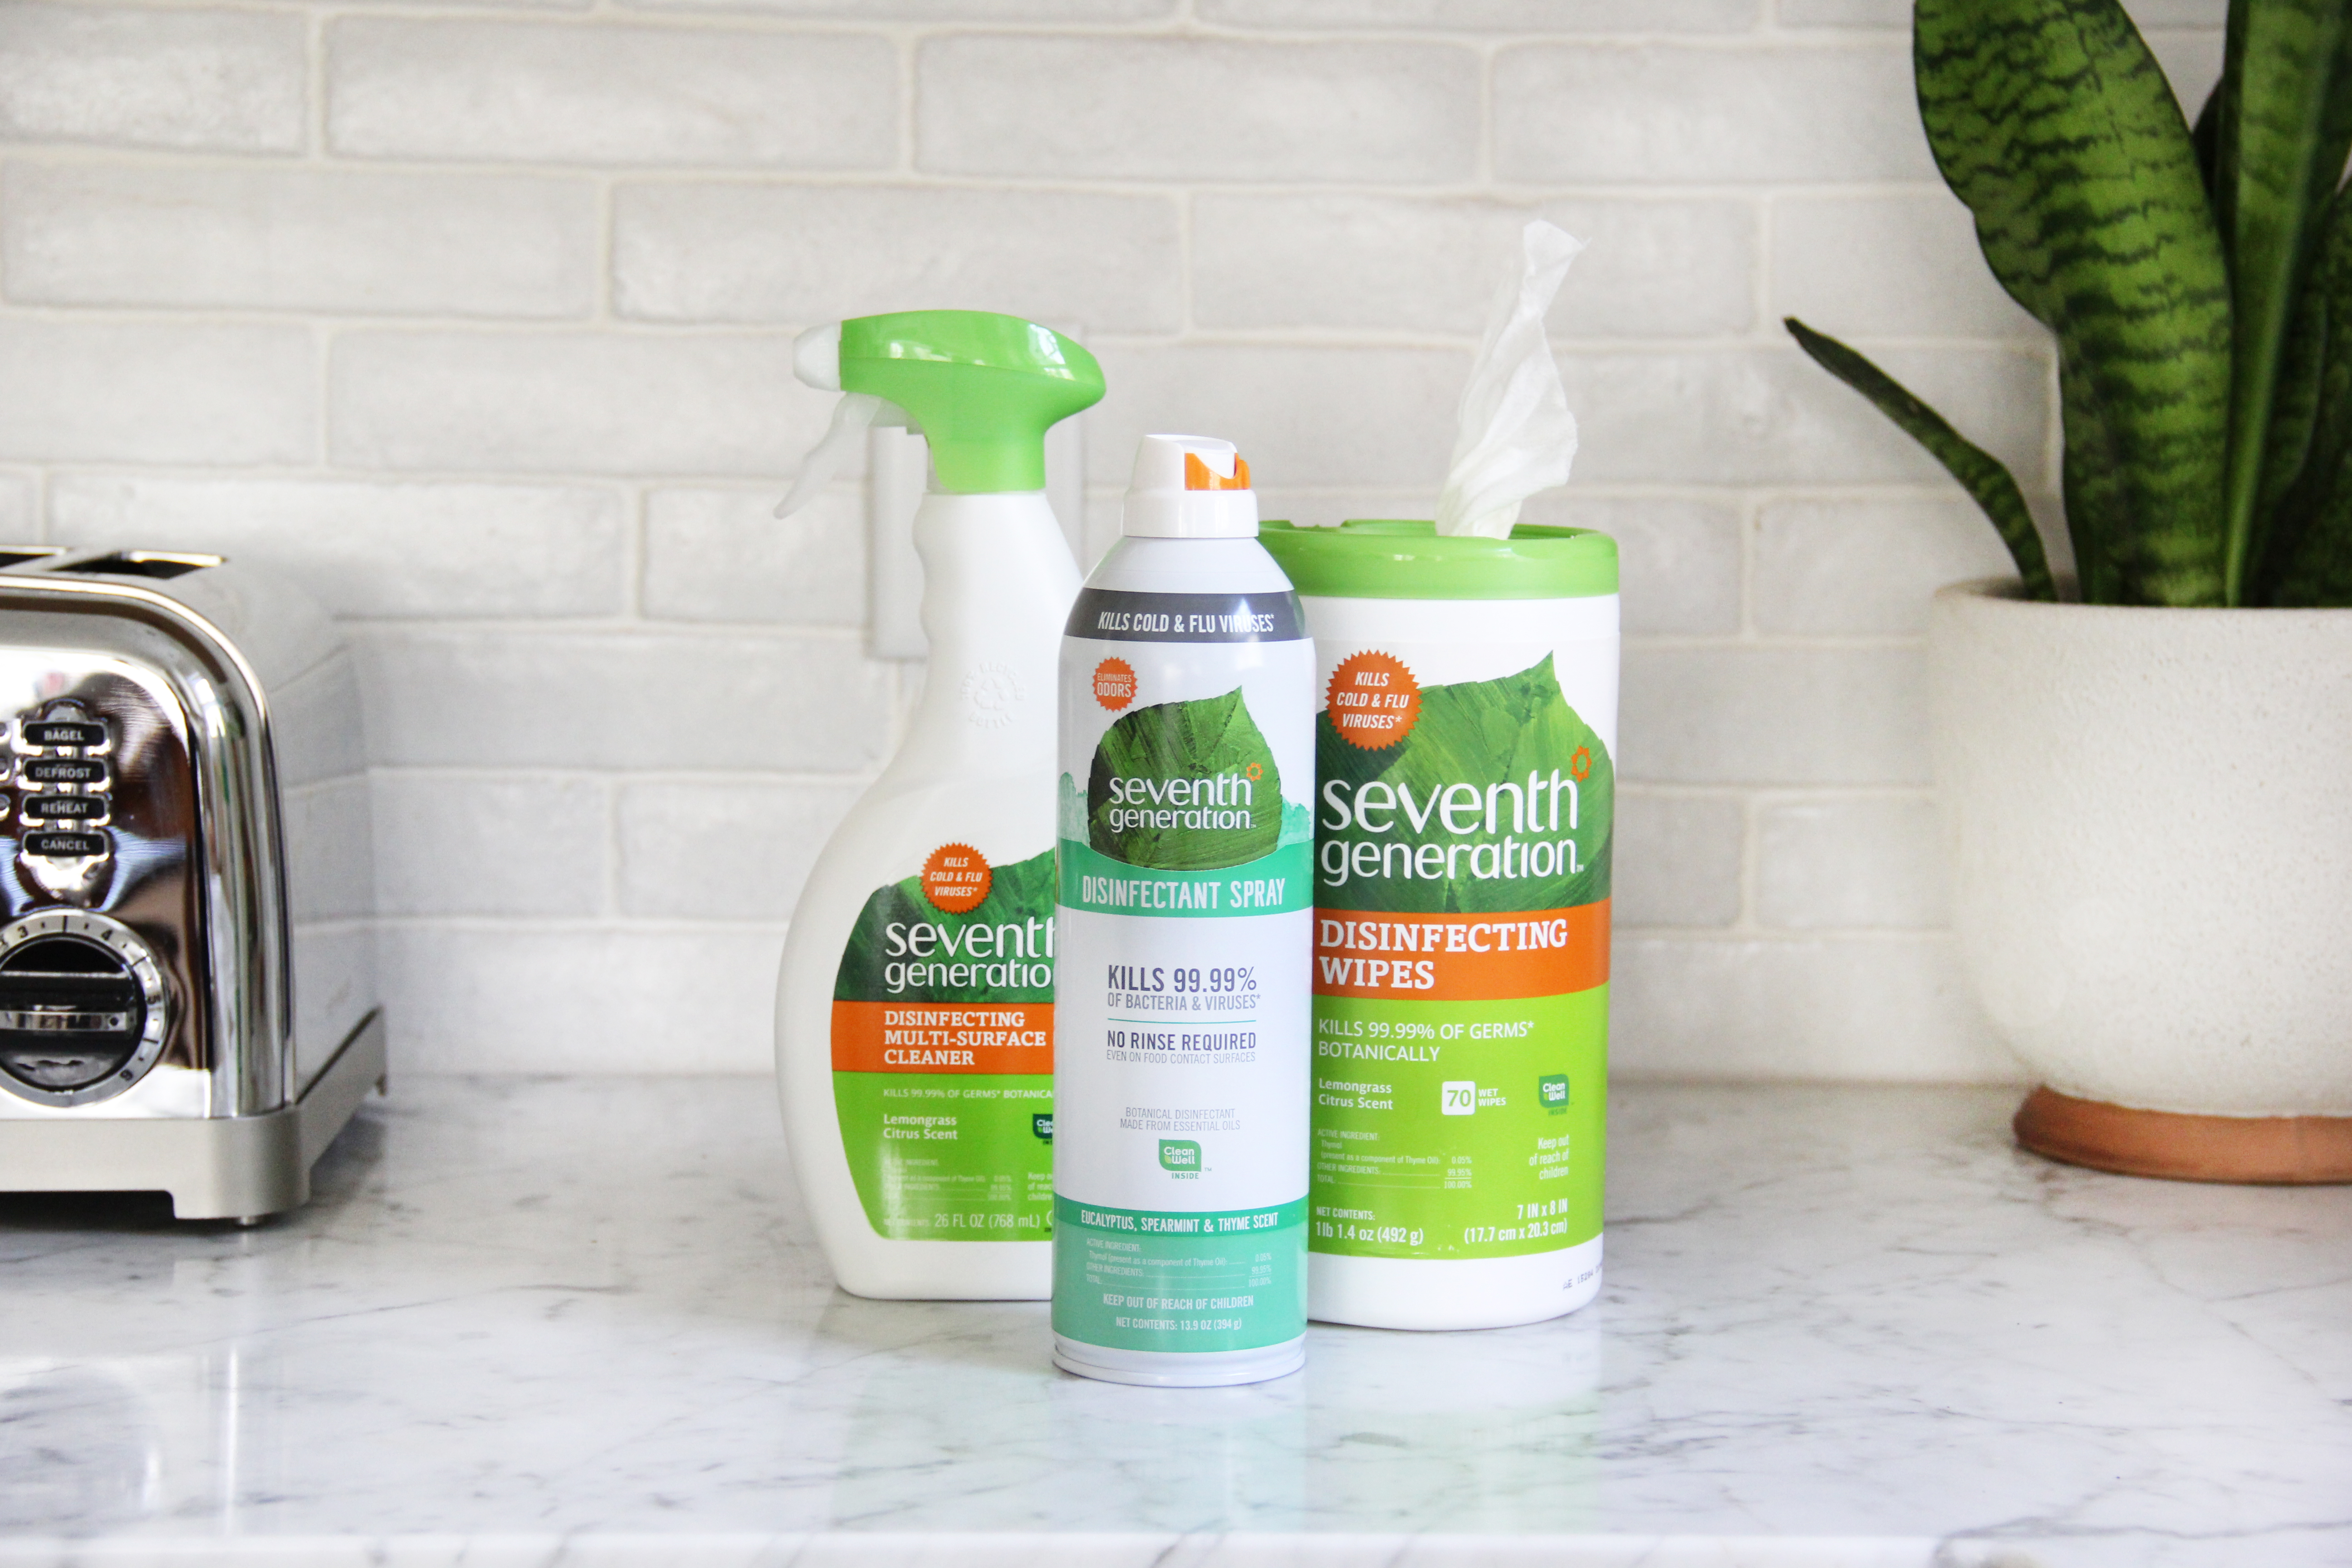 Disinfecting Guide Wipes Sprays Amp Cleaner At Seventh Generation